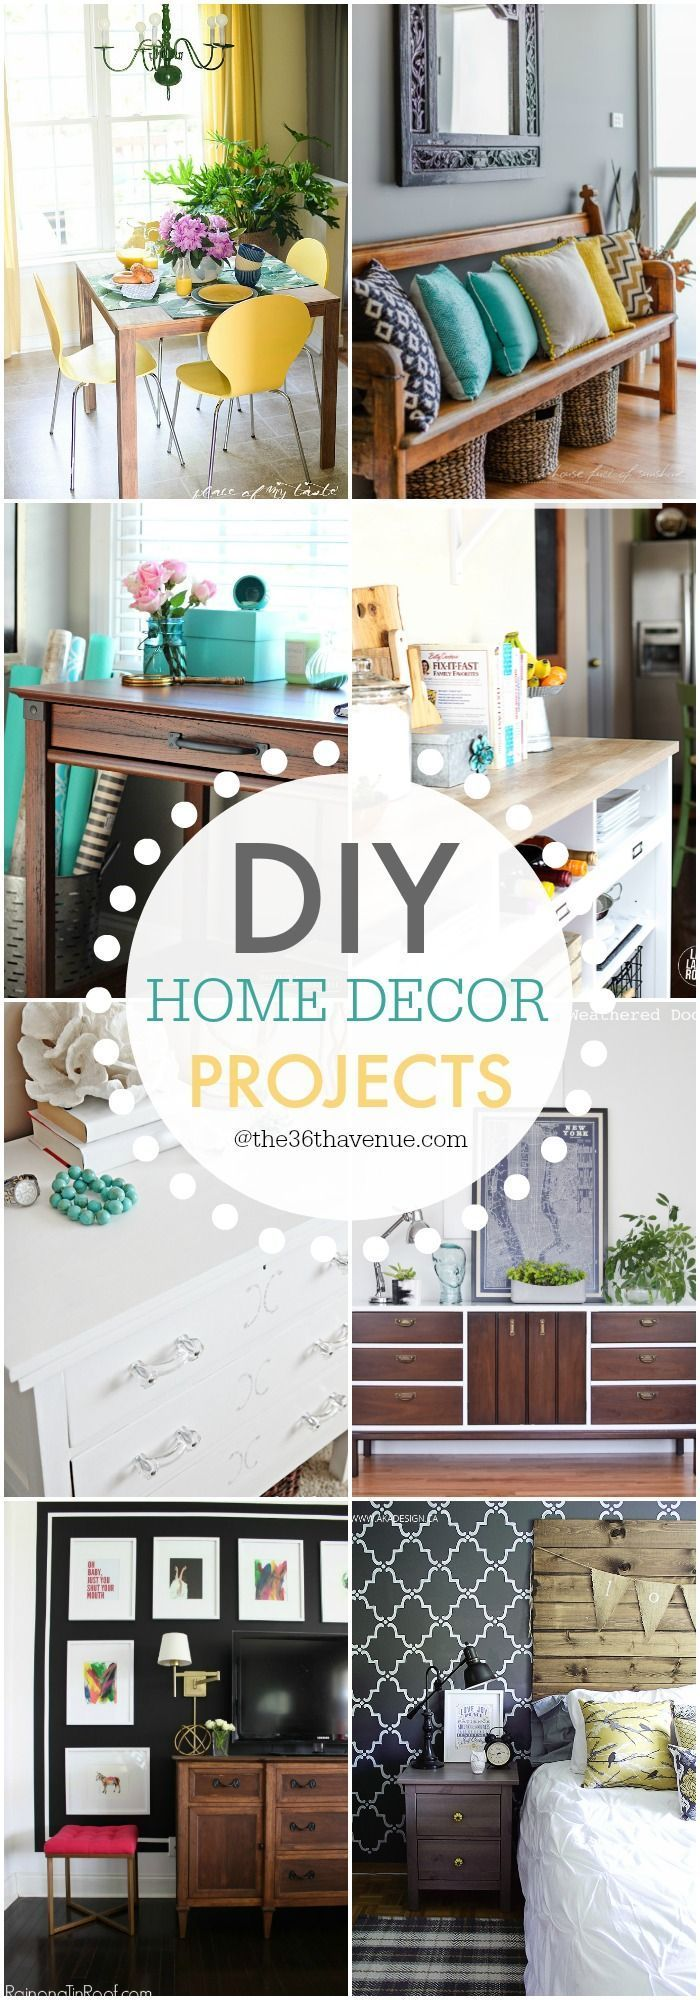 DIY Home Decor Projects and Ideas | Decorating, Hacks diy and Craft